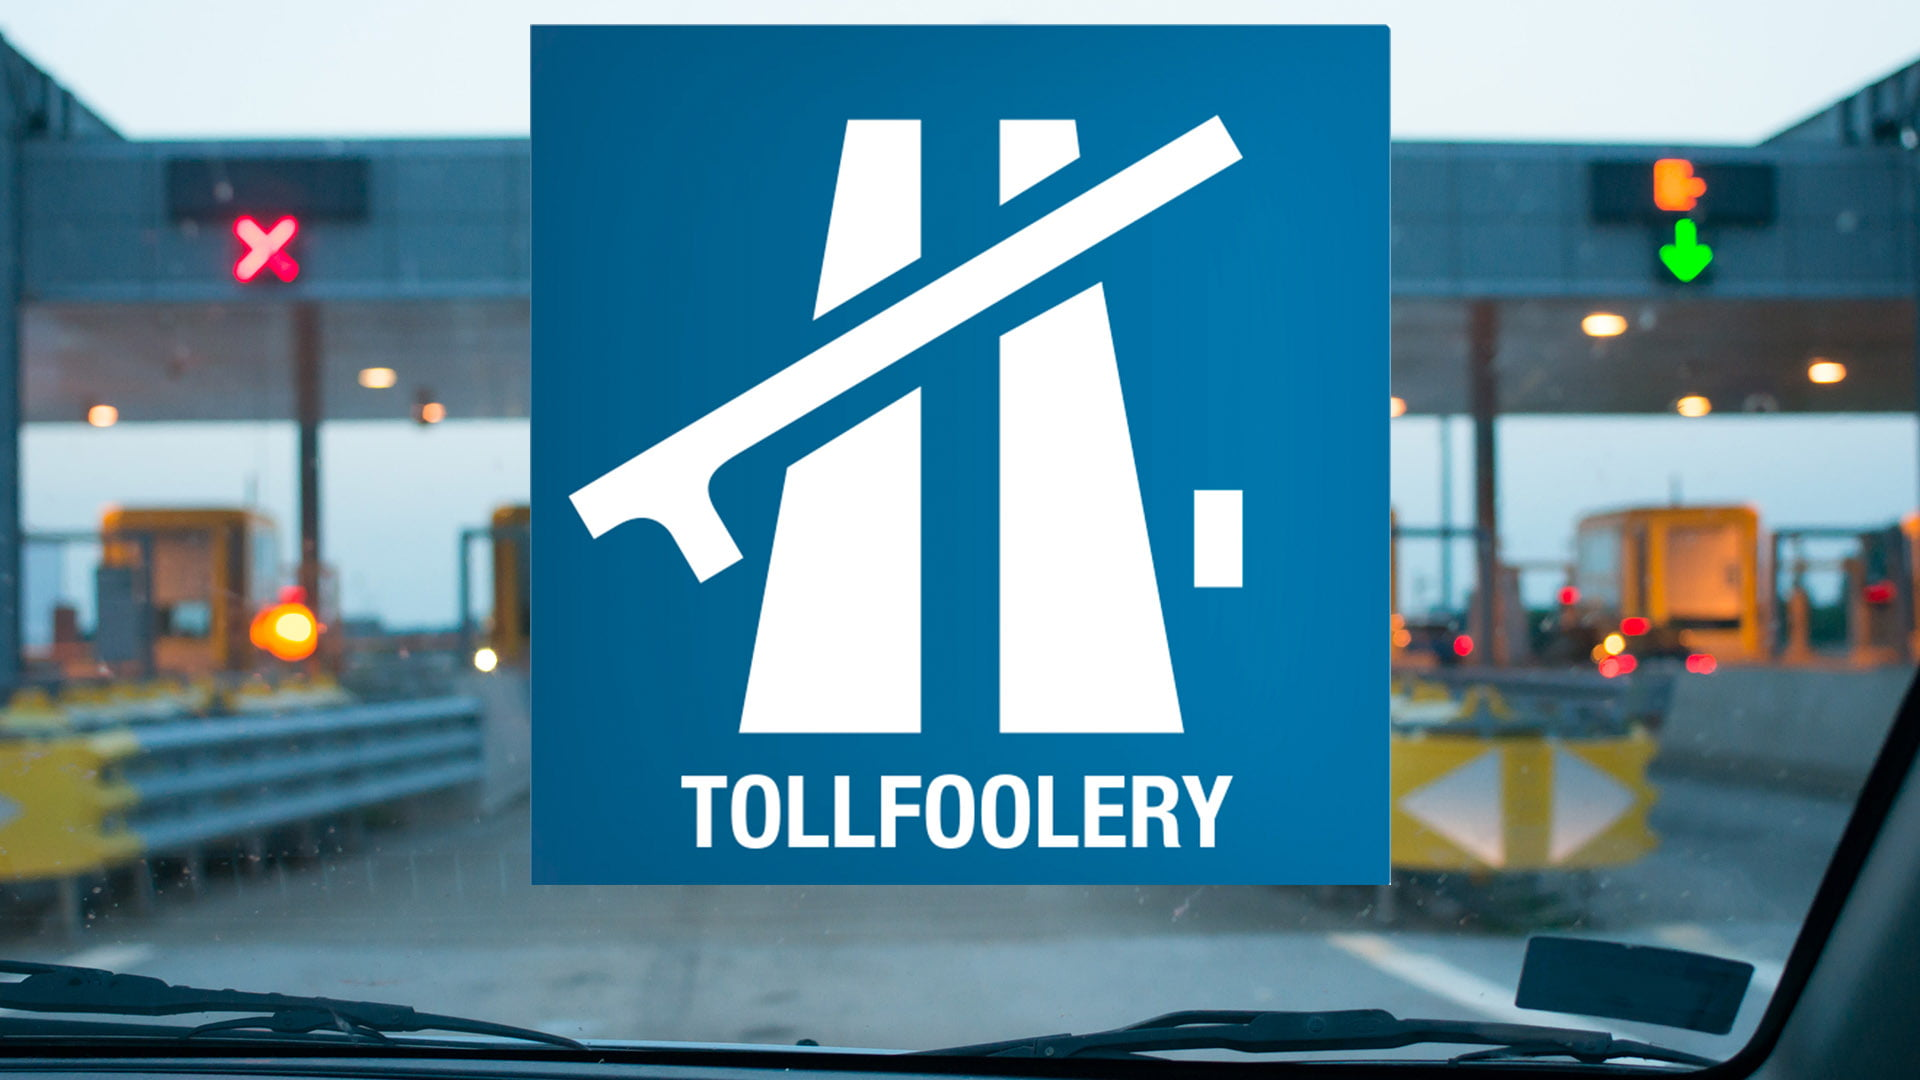 Tollfoolery toll booth